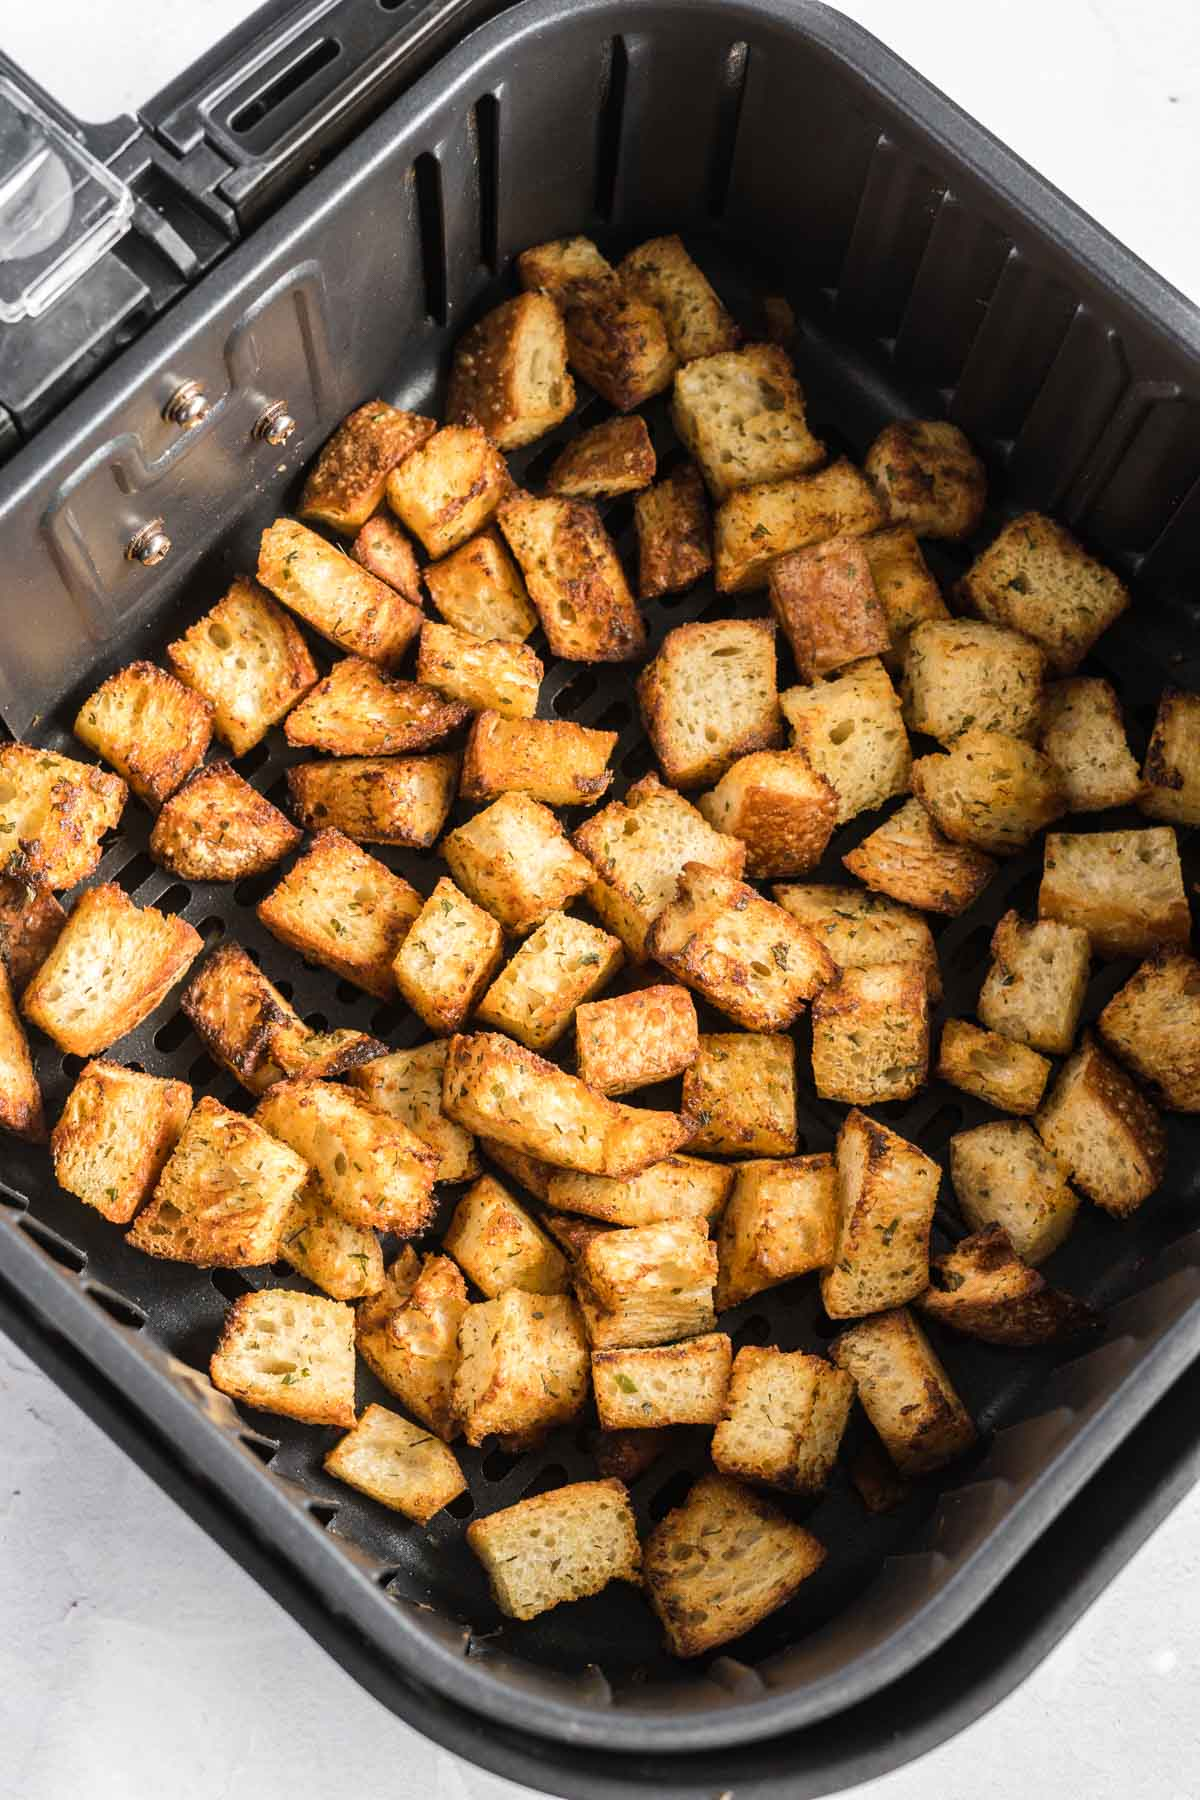 Cooked croutons in an air fryer basket in a single layer.